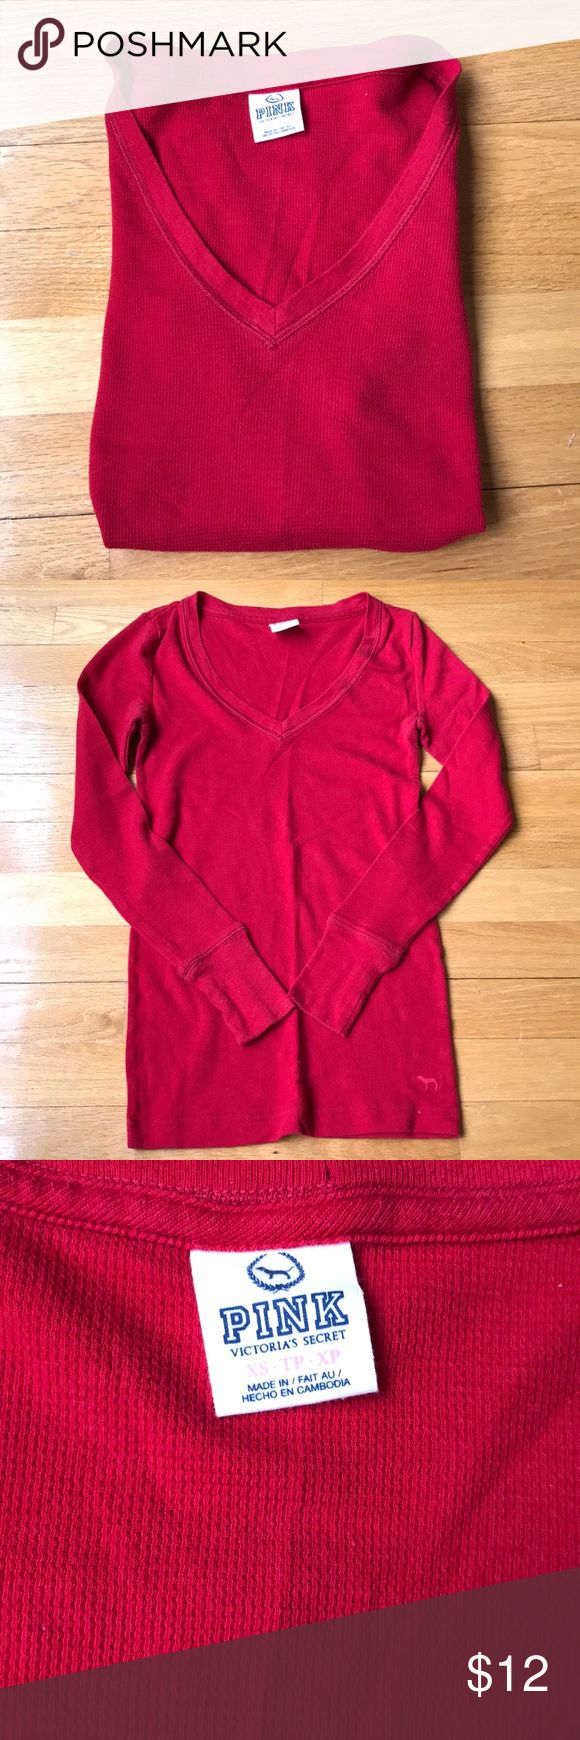 | VS PINK | Top Victoria's Secret red long sleeve top PINK Victoria's Secret Tops Tees - Long Sleeve